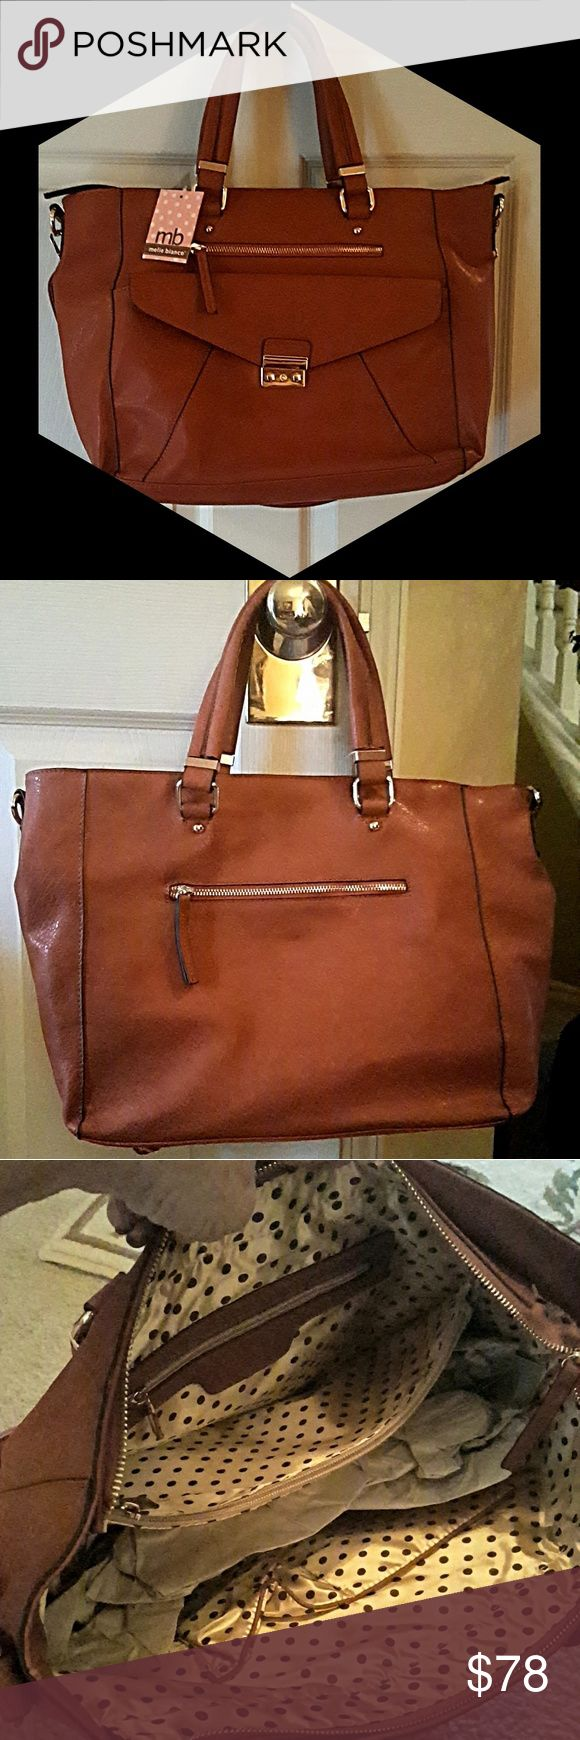 """EXTRA LARGE COGNAC VEGAN TOTE WOW! This bag is just fabulous for the Working Girl and/or the new Mom! It can be worn as a satchel or shoulder bag w/ an adjustable 32"""" strap. Inside there are 2 multi-functional pockets, a middle zip large pocket, as well as a zip compartment along the back. Turn the bag around & there is another zip pocket on the rear. Tastefully done is a separate compartment in the front done in gold hardware for easy access. Melie Bianco Bags Totes"""